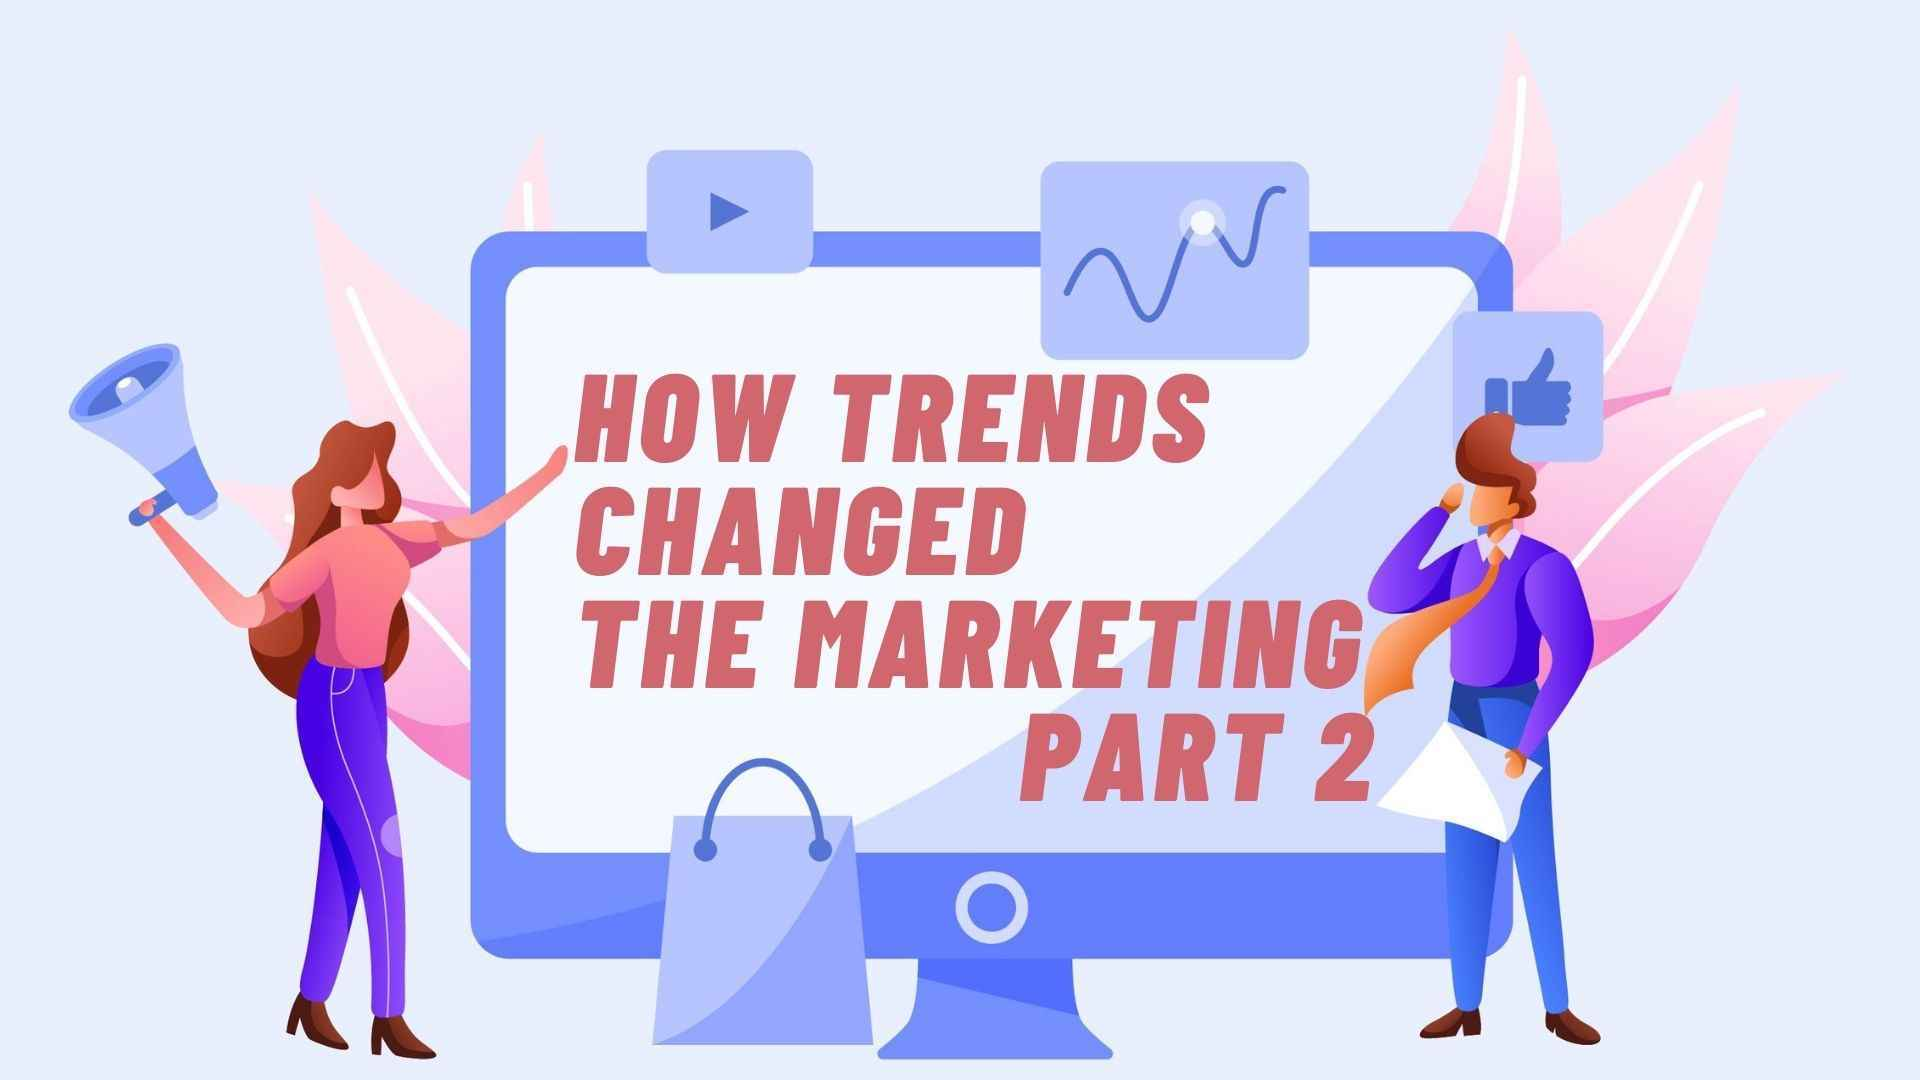 How trends changed the marketing